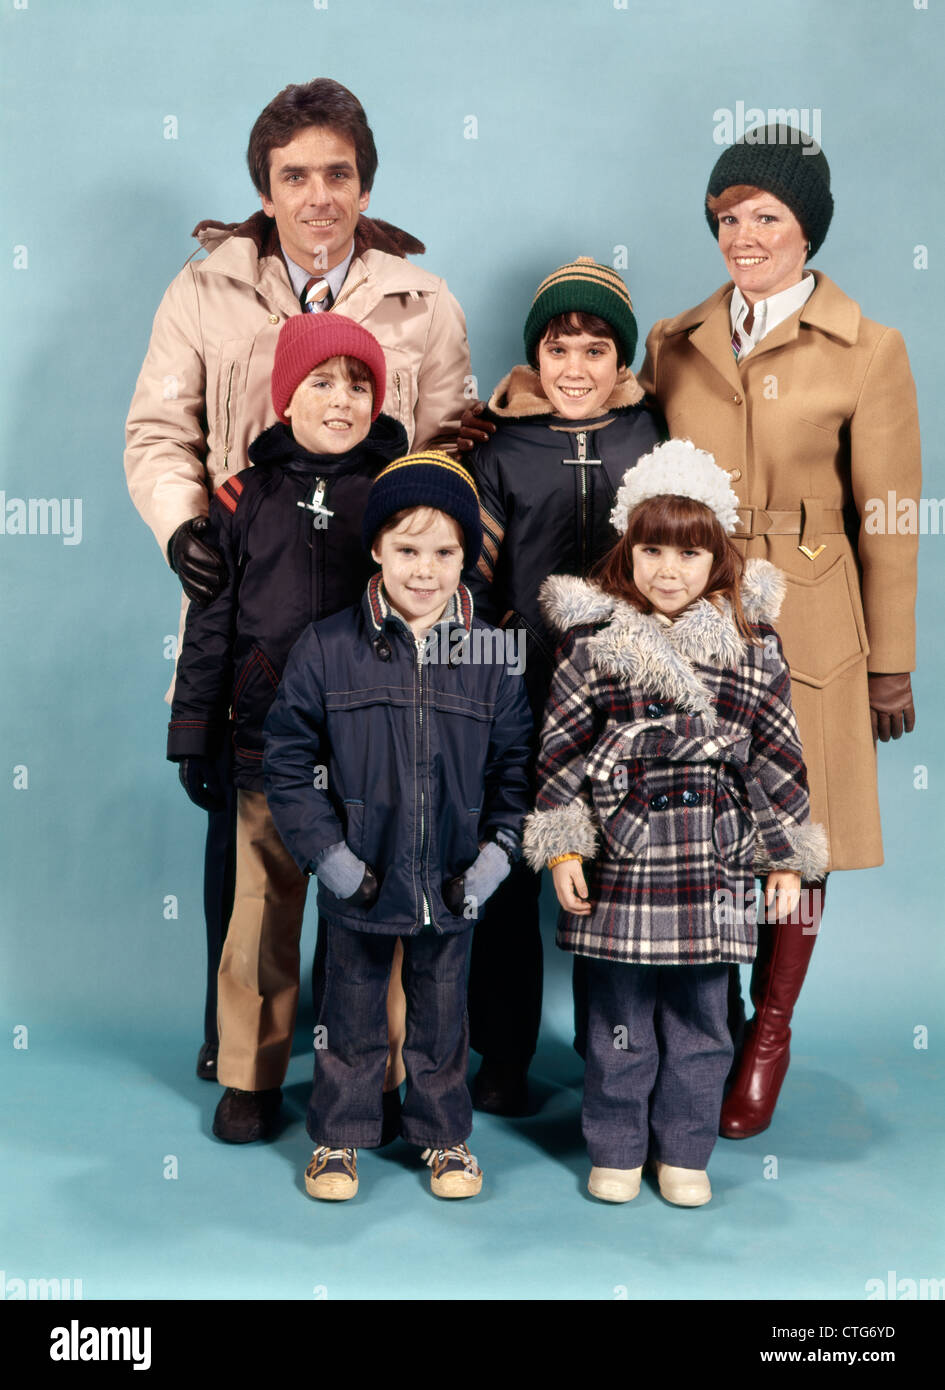 1970s FAMILY OF SIX PORTRAIT FULL LENGTH WEARING WINTER COATS LOOKING AT CAMERA - Stock Image